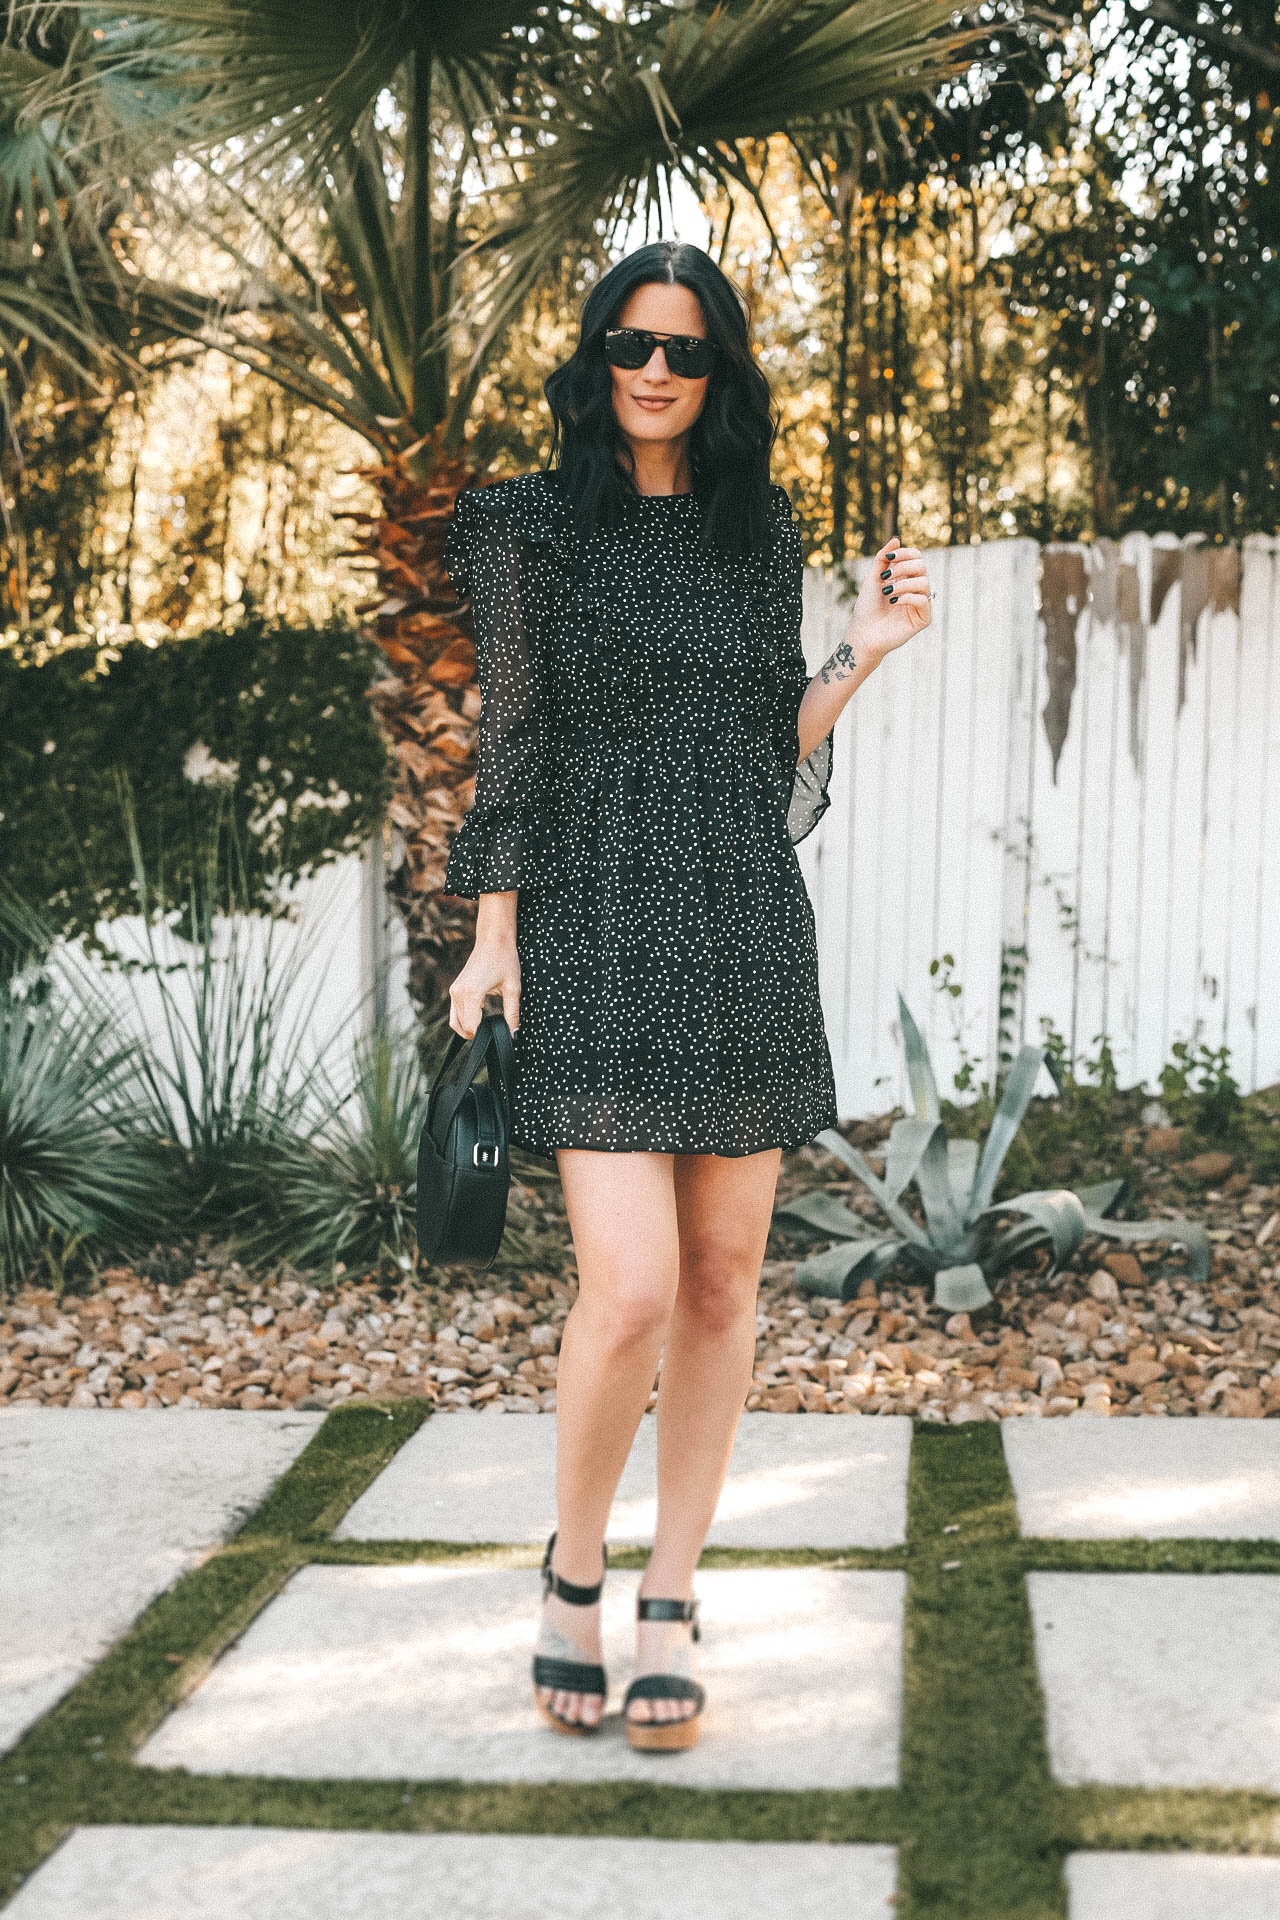 #ad This Polka Dot Dress from @Walmart makes a perfect summer statement! Pair it with a wedge heel, a handbag and sunnies and you're ready for a summer night out! || Dressed to Kill #sponsored #WeDressAmerica #WalmartFashion #summerstyle | We Dress America Walmart campaign featured by top US fashion blog, Dressed to Kill: image of a woman wearing a Walmart polka dot mini dress, Walmart crossbody circle bag, and Walmart wedge sandals